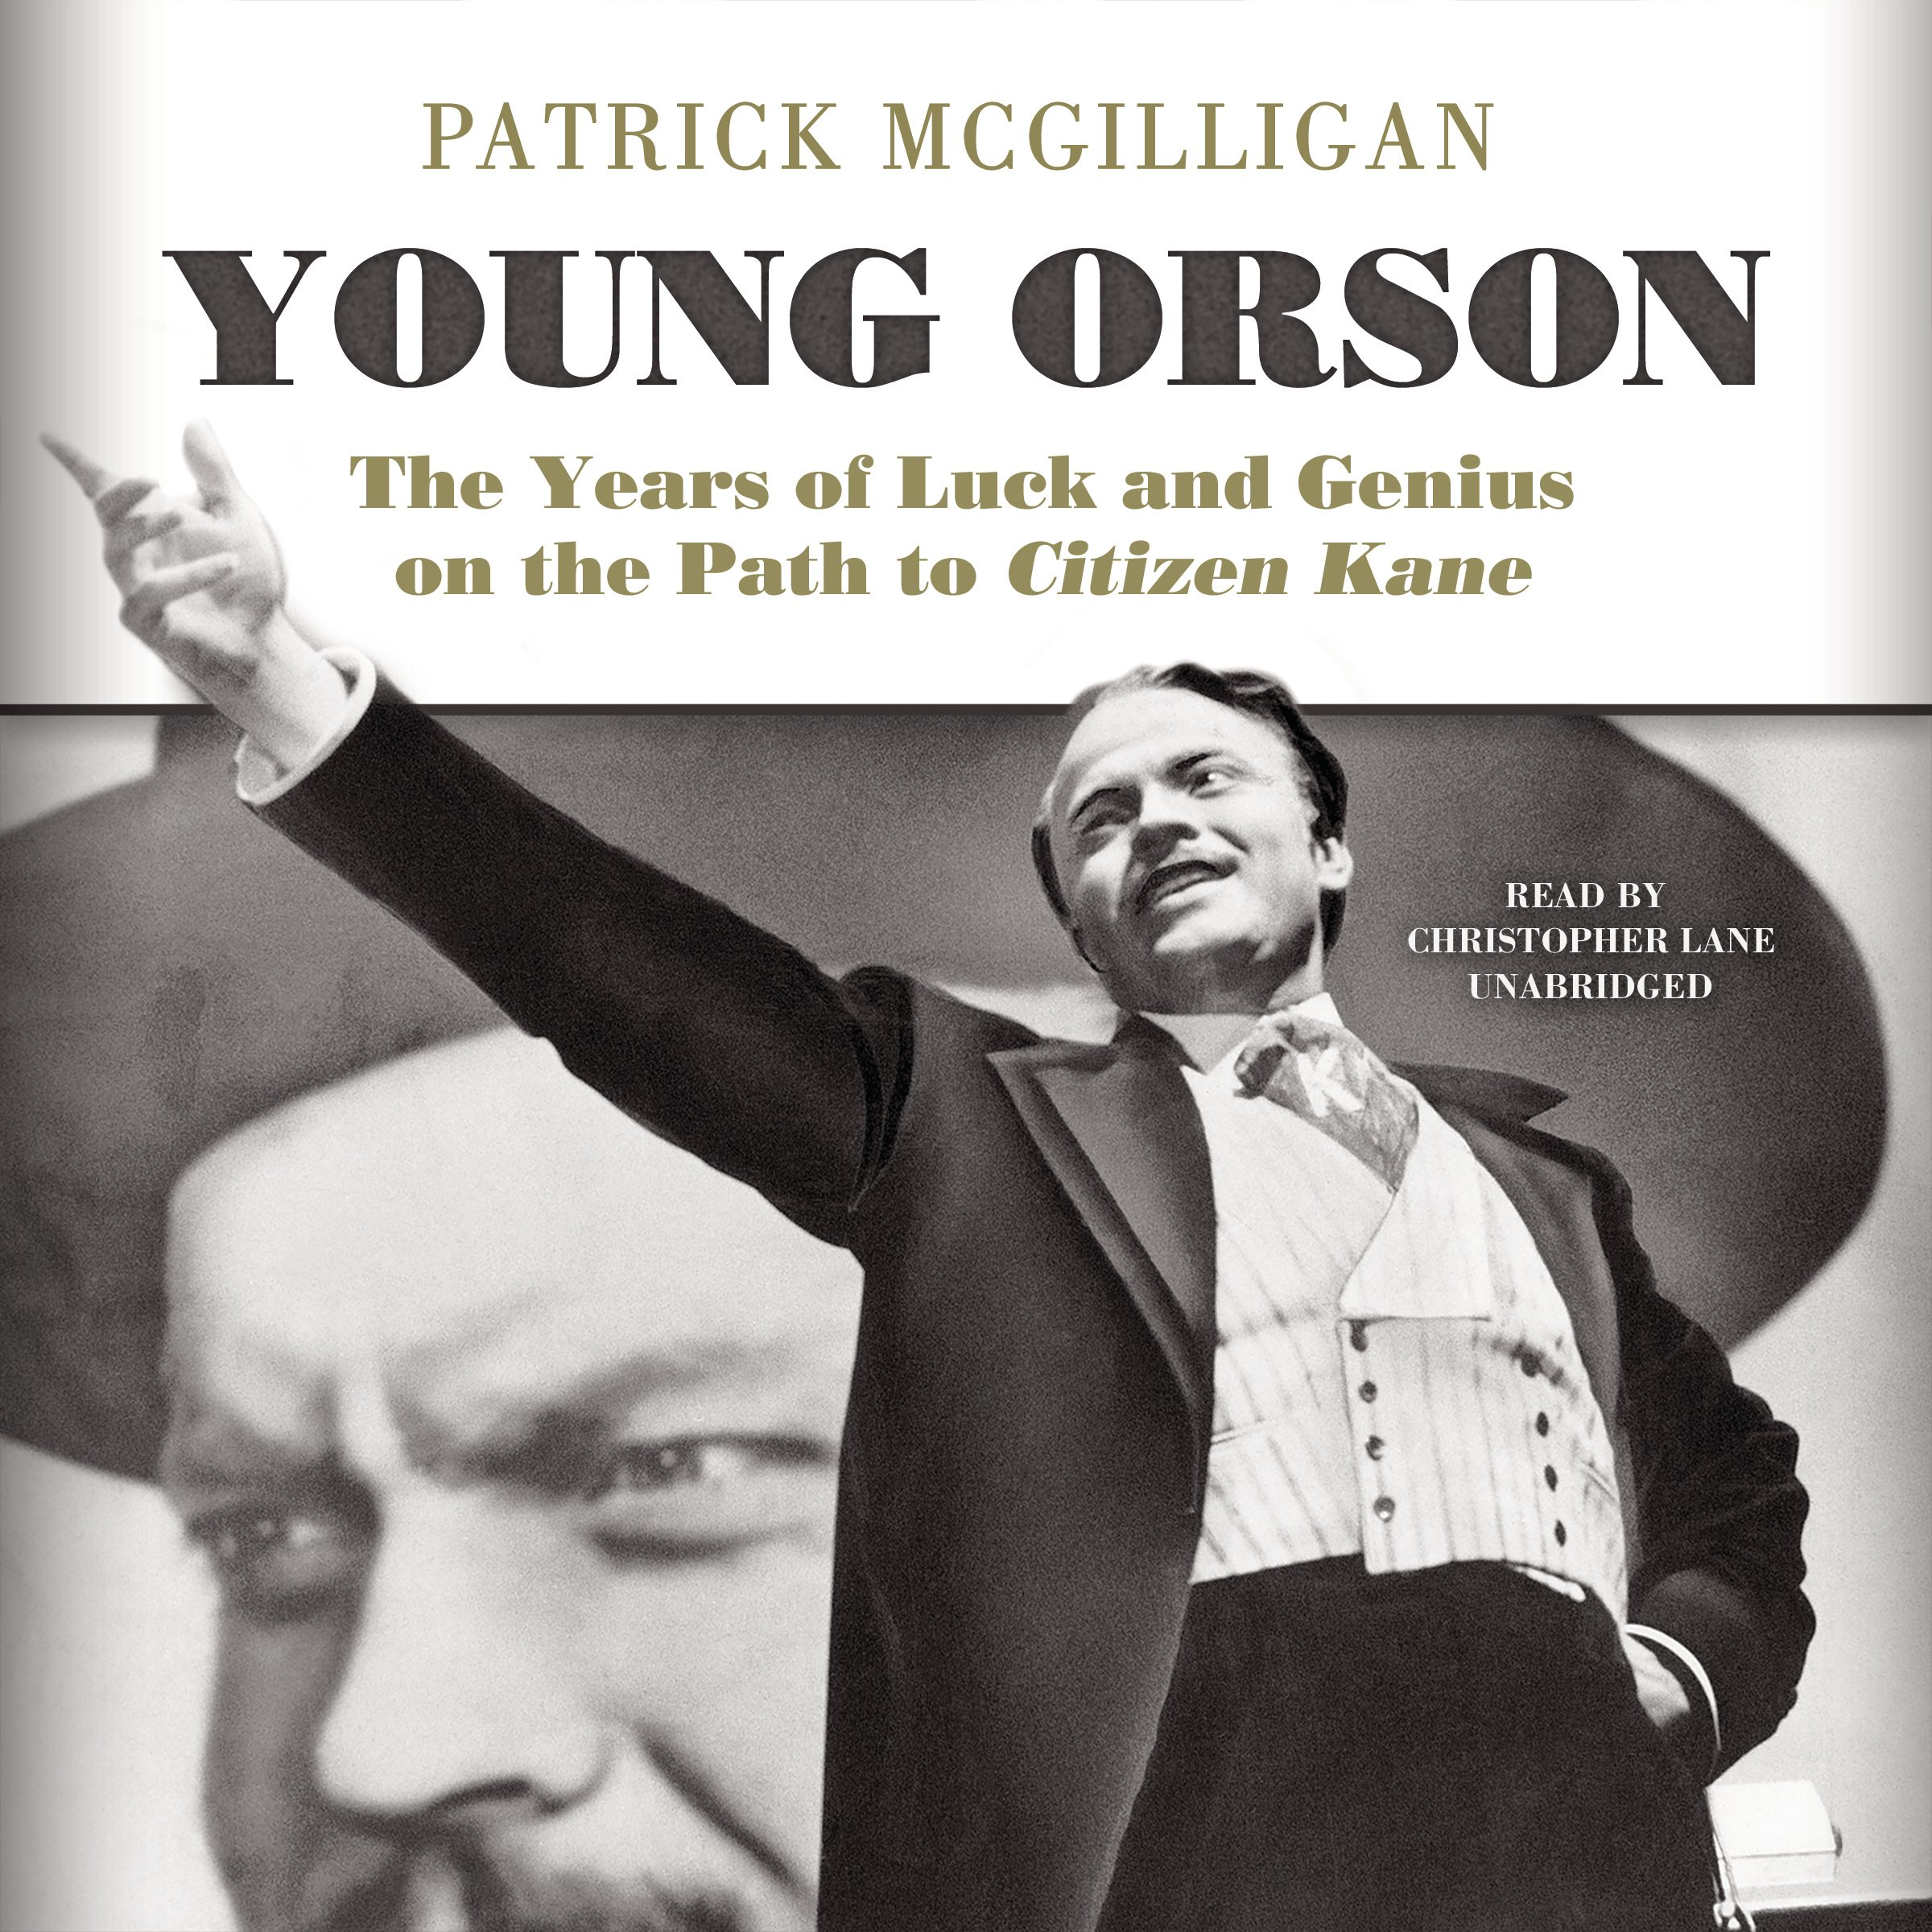 Young Orson: The Years of Luck and Genius on the Path to 'Citizen Kane'